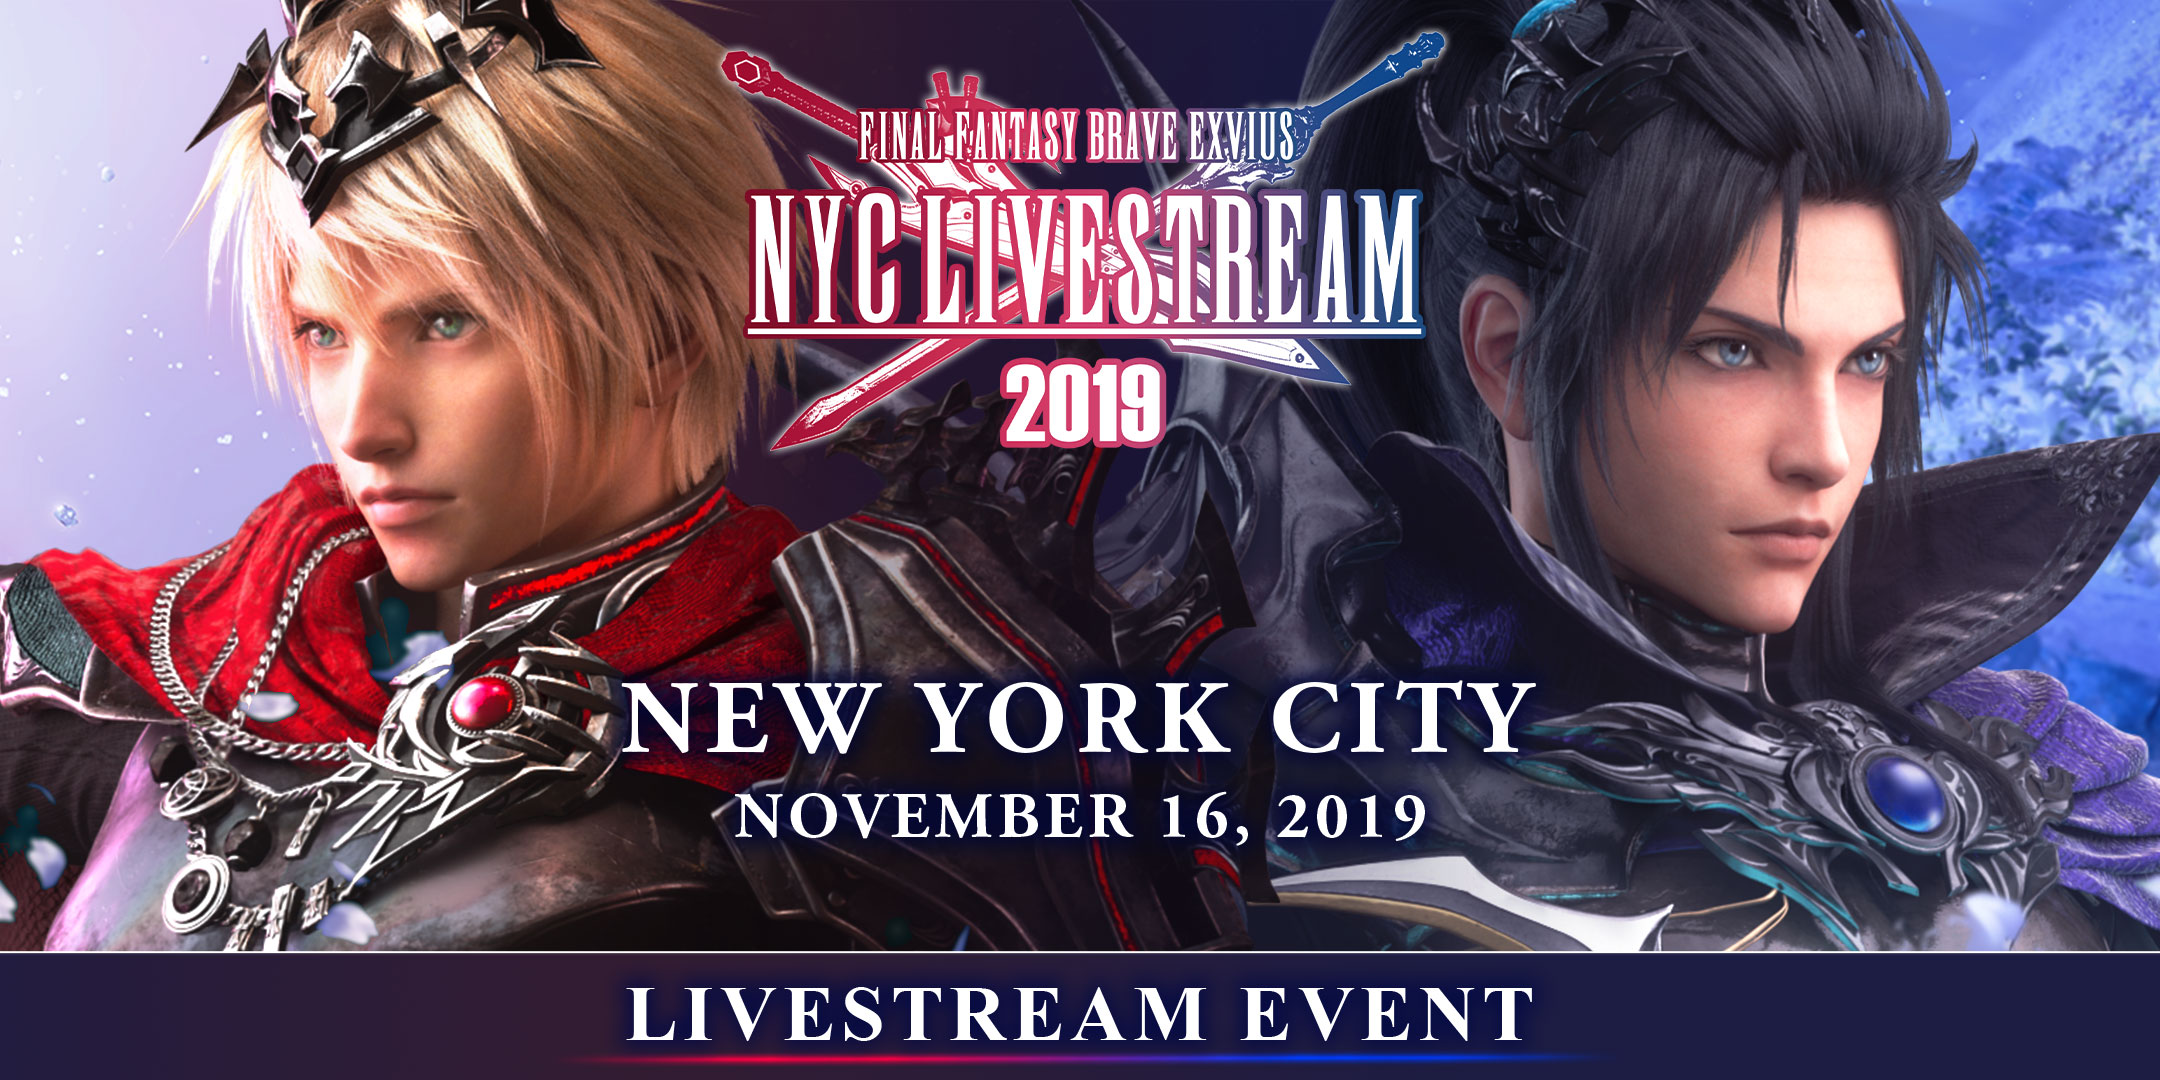 Tickets for FFBE NYC LIVESTREAM EVENT 2019 in New York from ShowClix